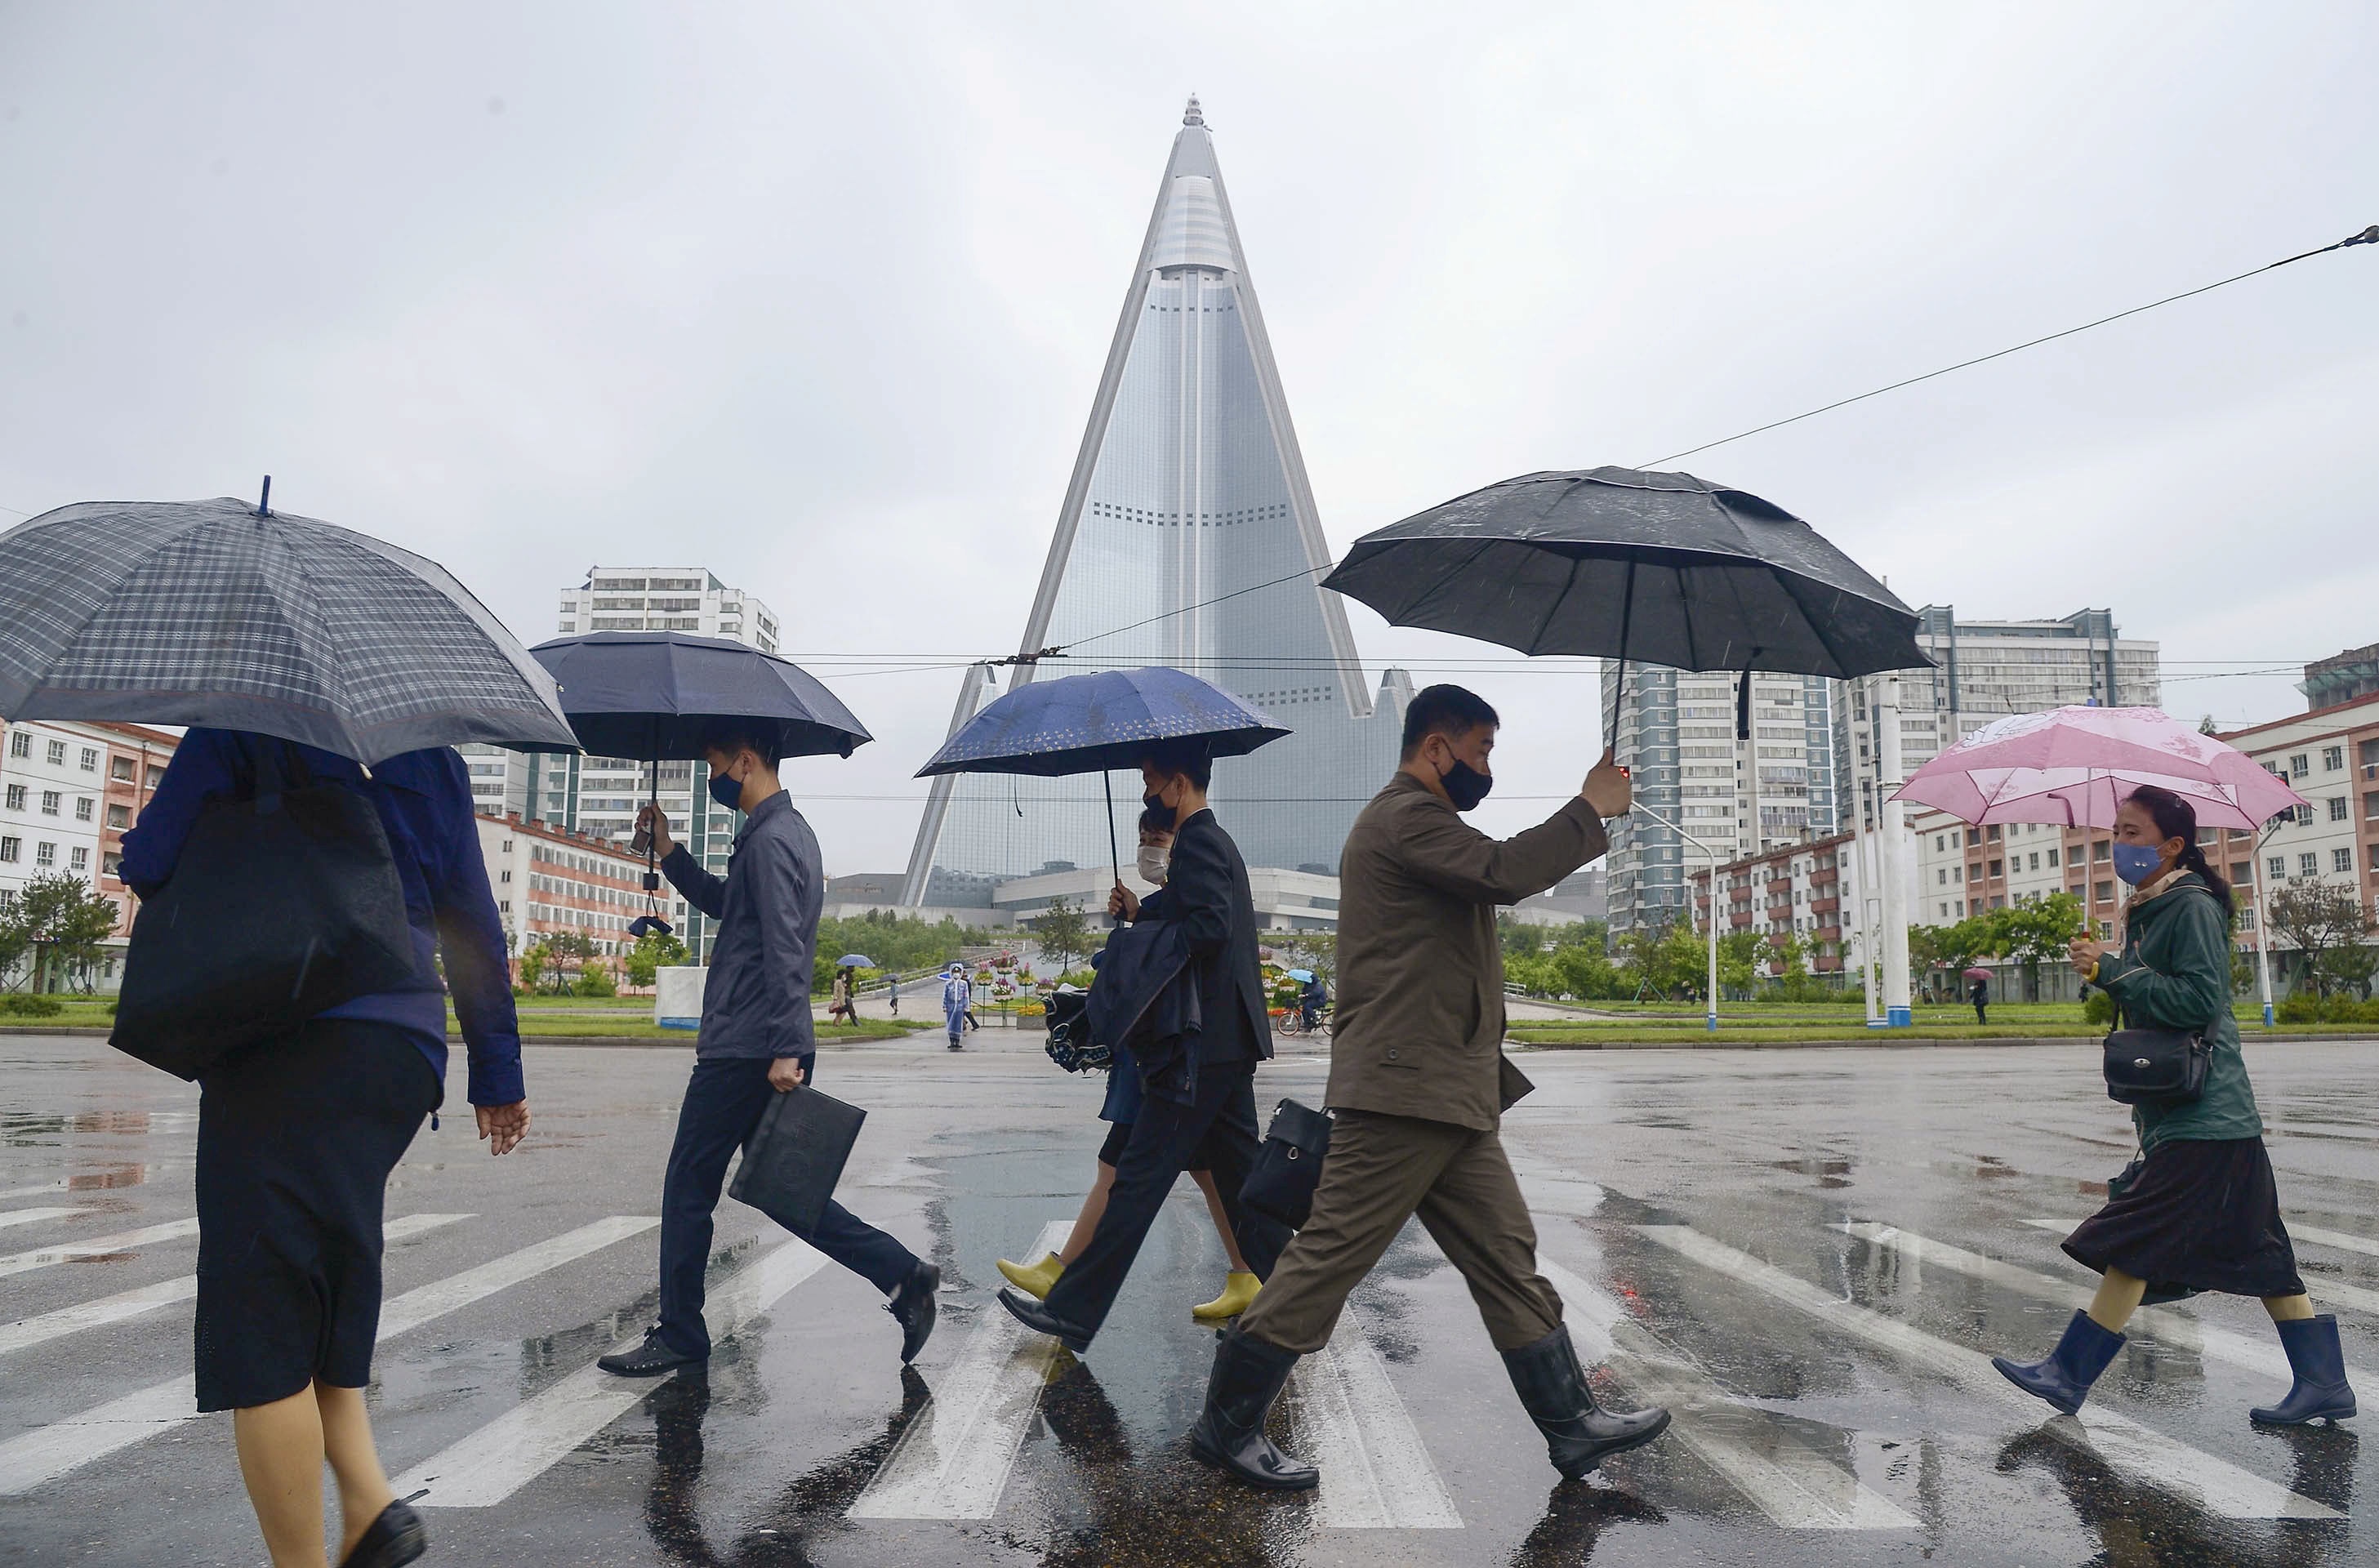 People wearing protective face masks walk amid concerns over the new coronavirus disease (COVID-19) in Pyongyang, North Korea May 15, 2020, in this photo released by Kyodo. Mandatory credit Kyodo/via REUTERS